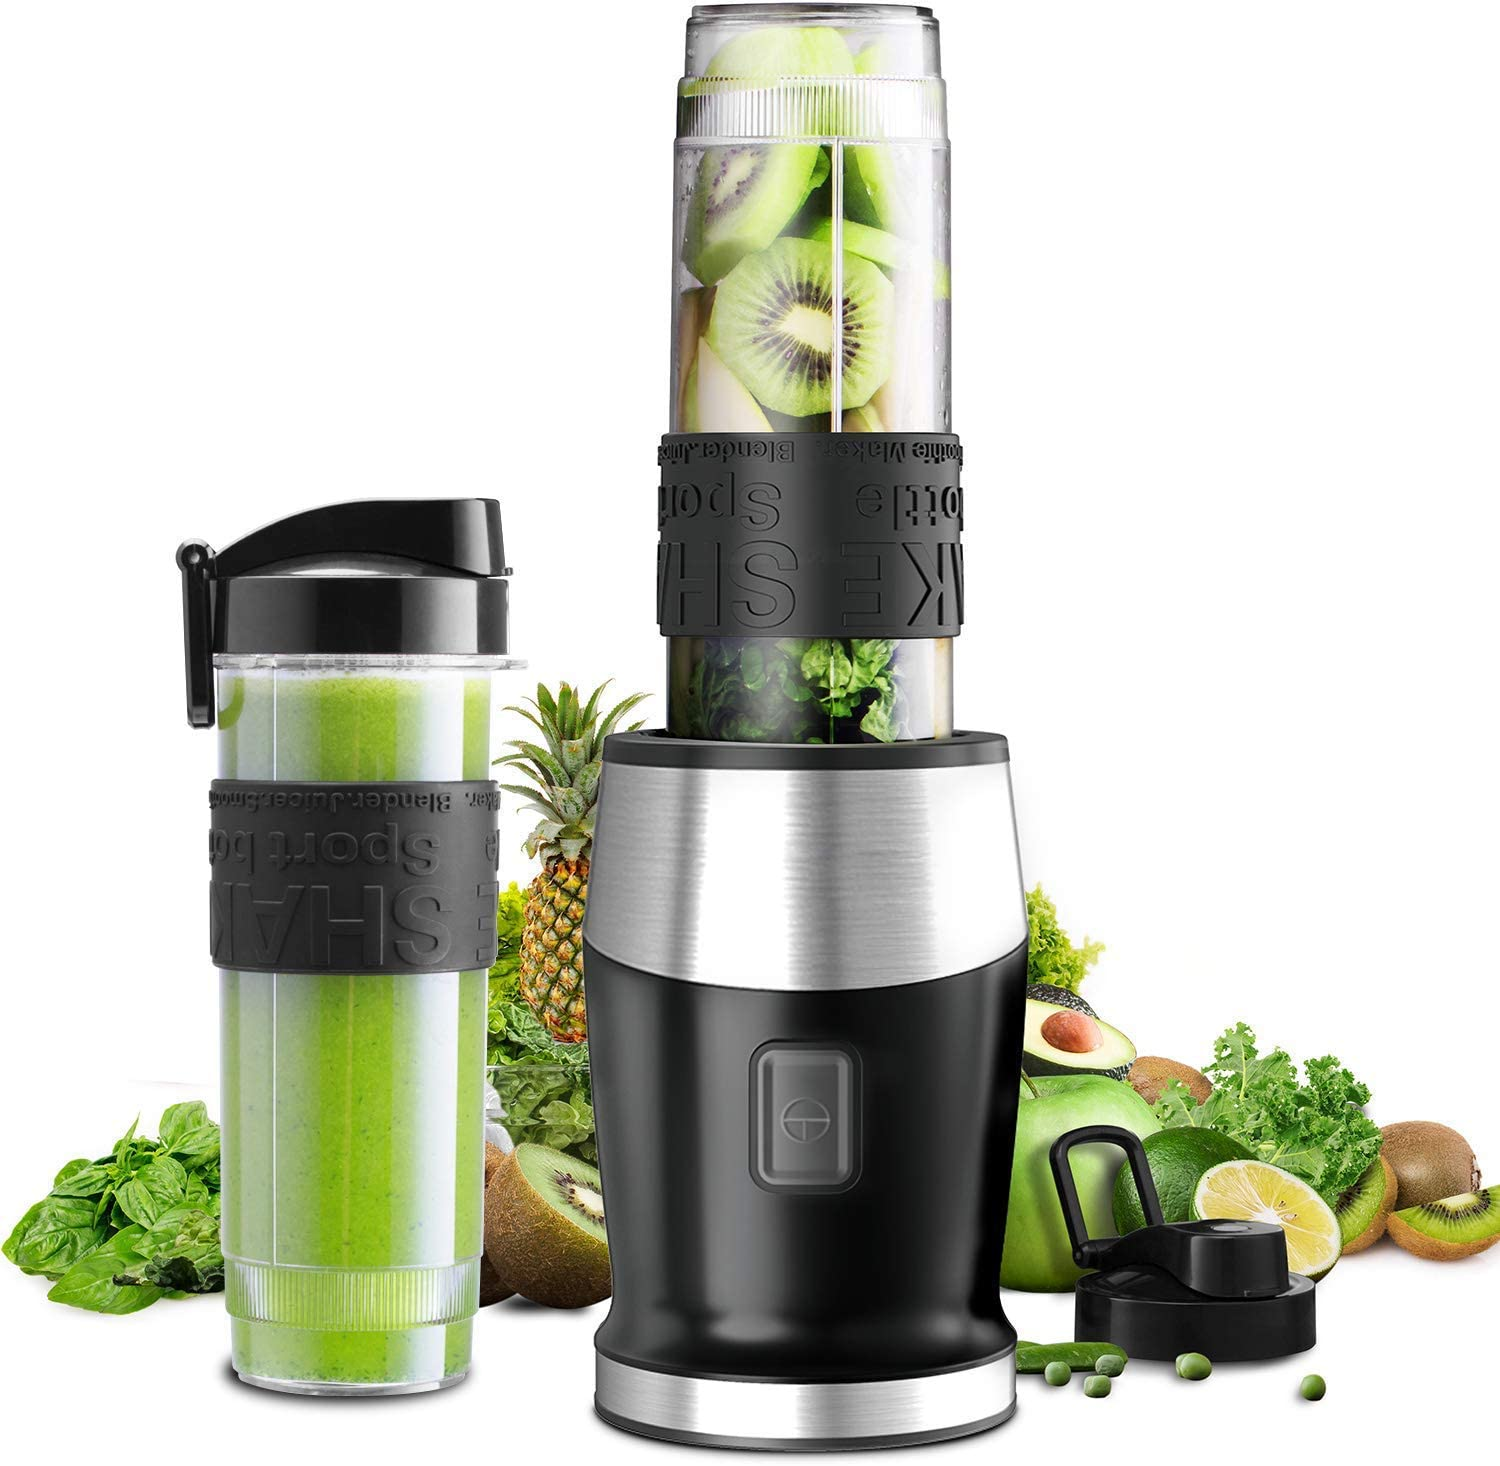 Chokelee Personal Blender, Smoothie Blender 2-in-1 Single Serve Blender, Mini Bullet Blender 300W with 20 Oz Tritan Sports Bottle for Juices, Shakes and Smoothies